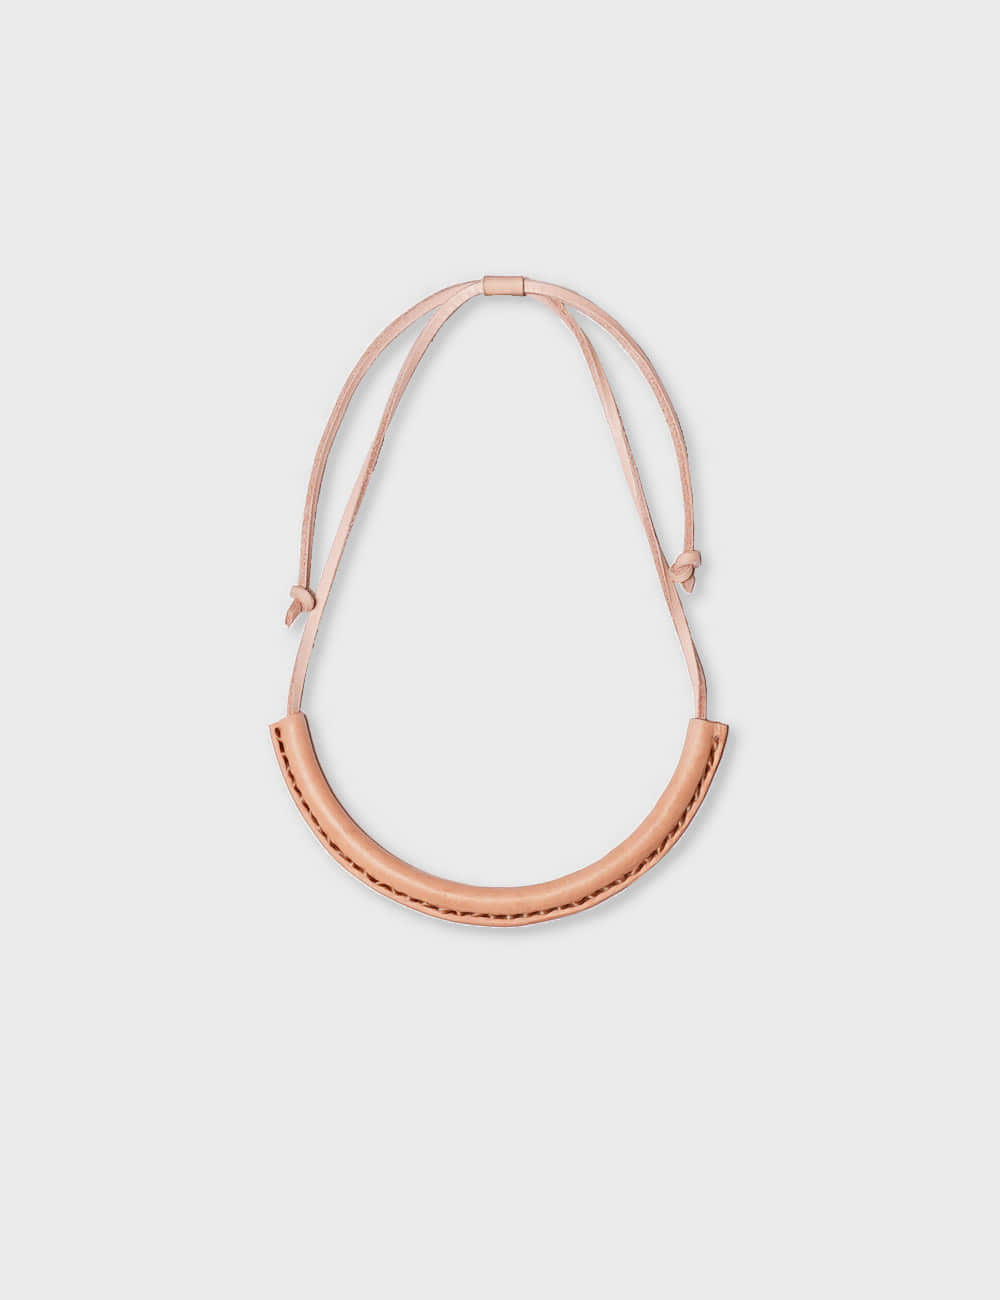 crescioni : CIRCUIT NECKLACE (NATURAL)